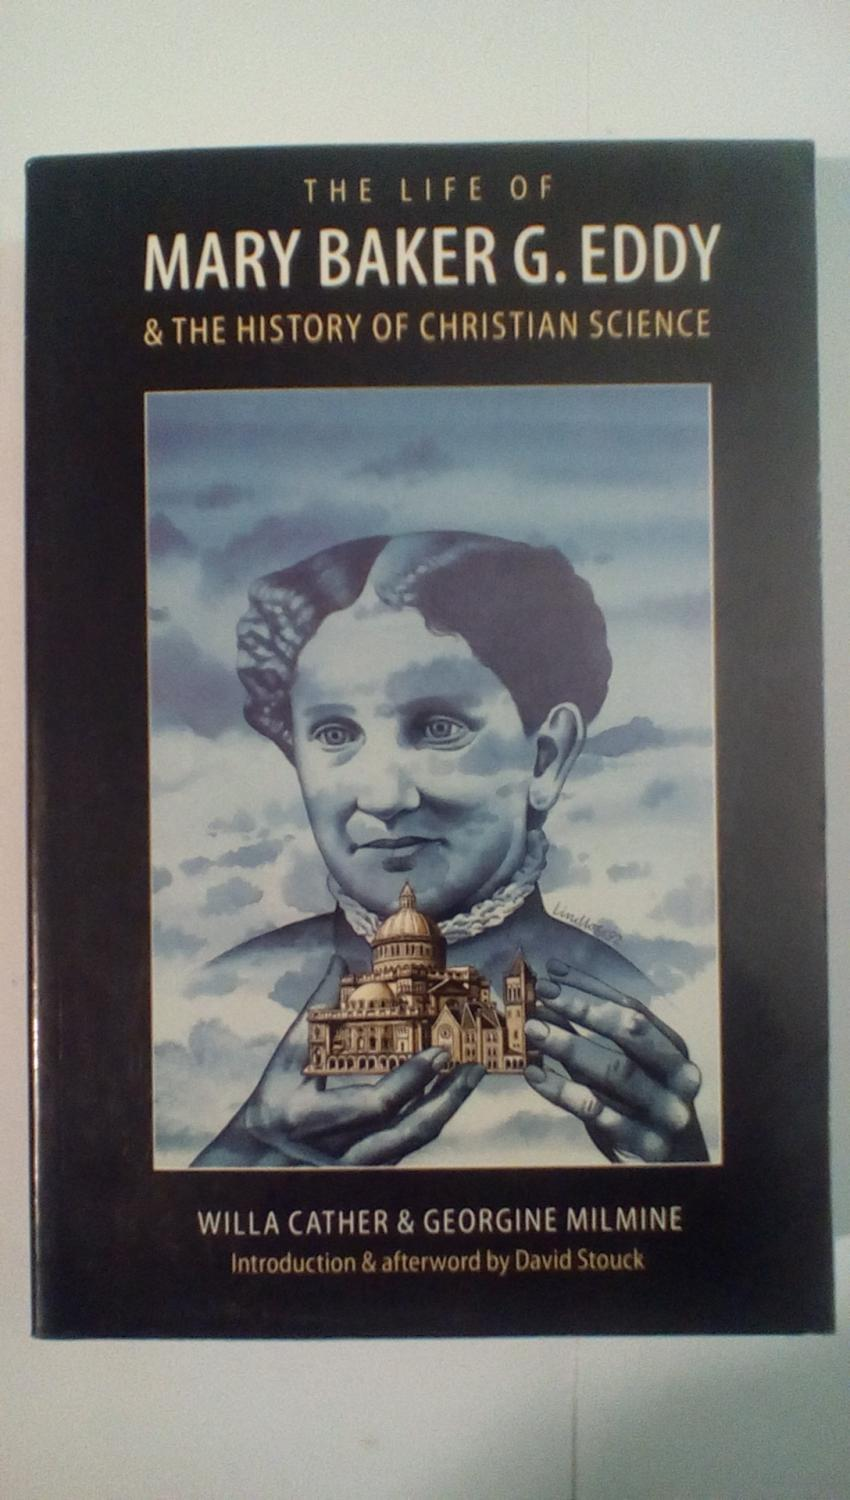 The Life of Mary Baker G. Eddy and the History of Christian Science - Cather, Willa; Milmine, Georgine